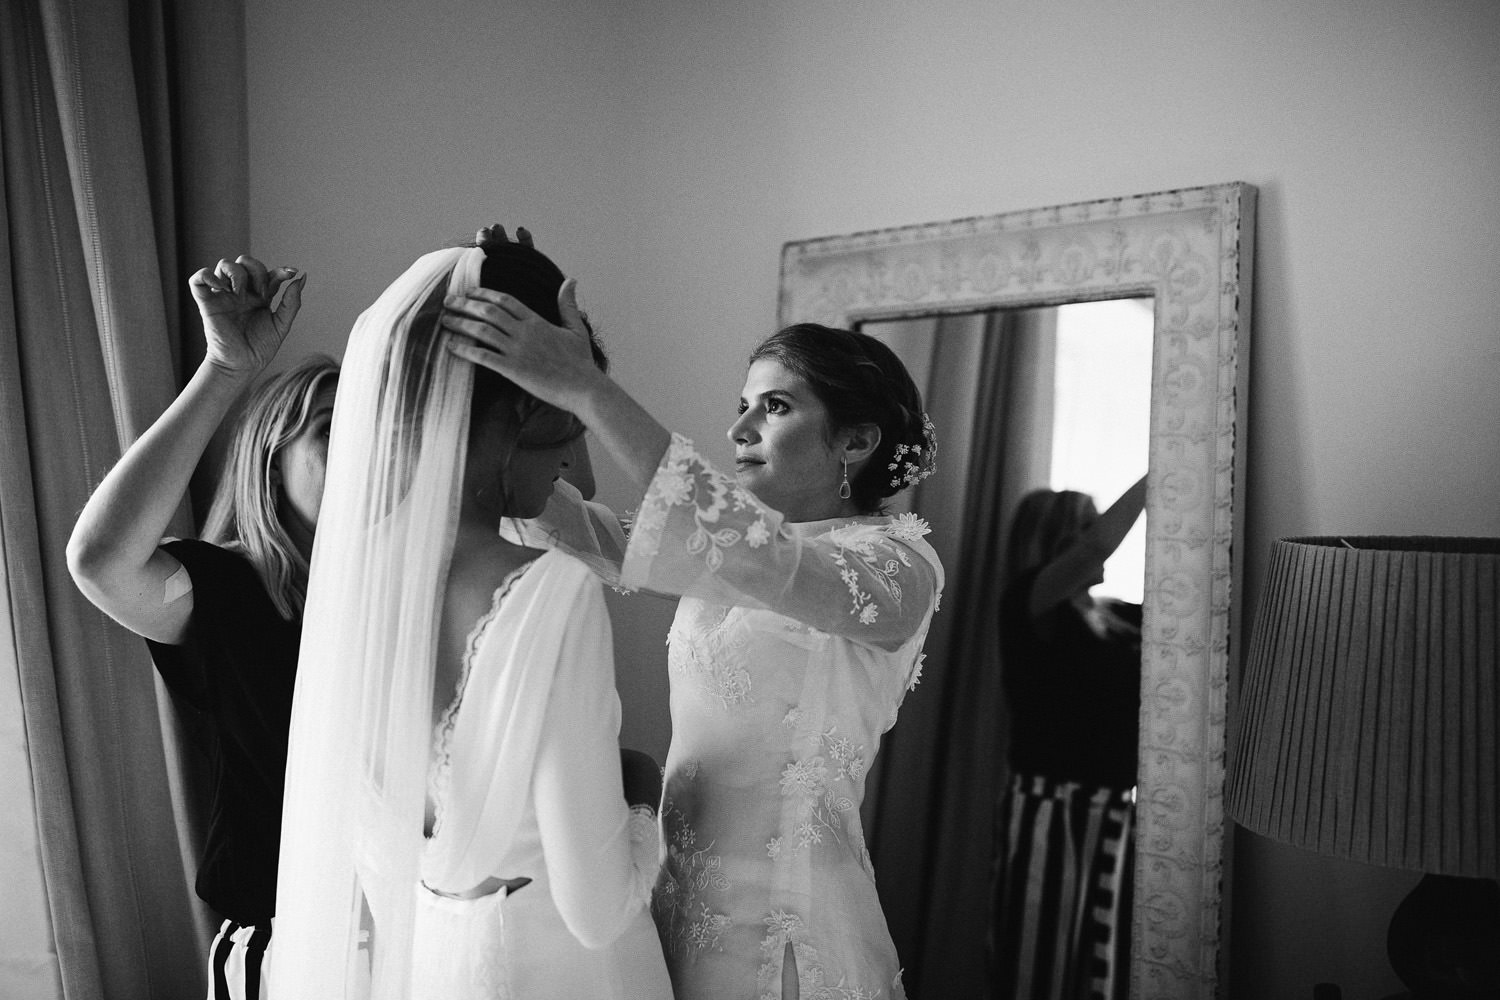 Bridesmaid adjusts the veil of the bride